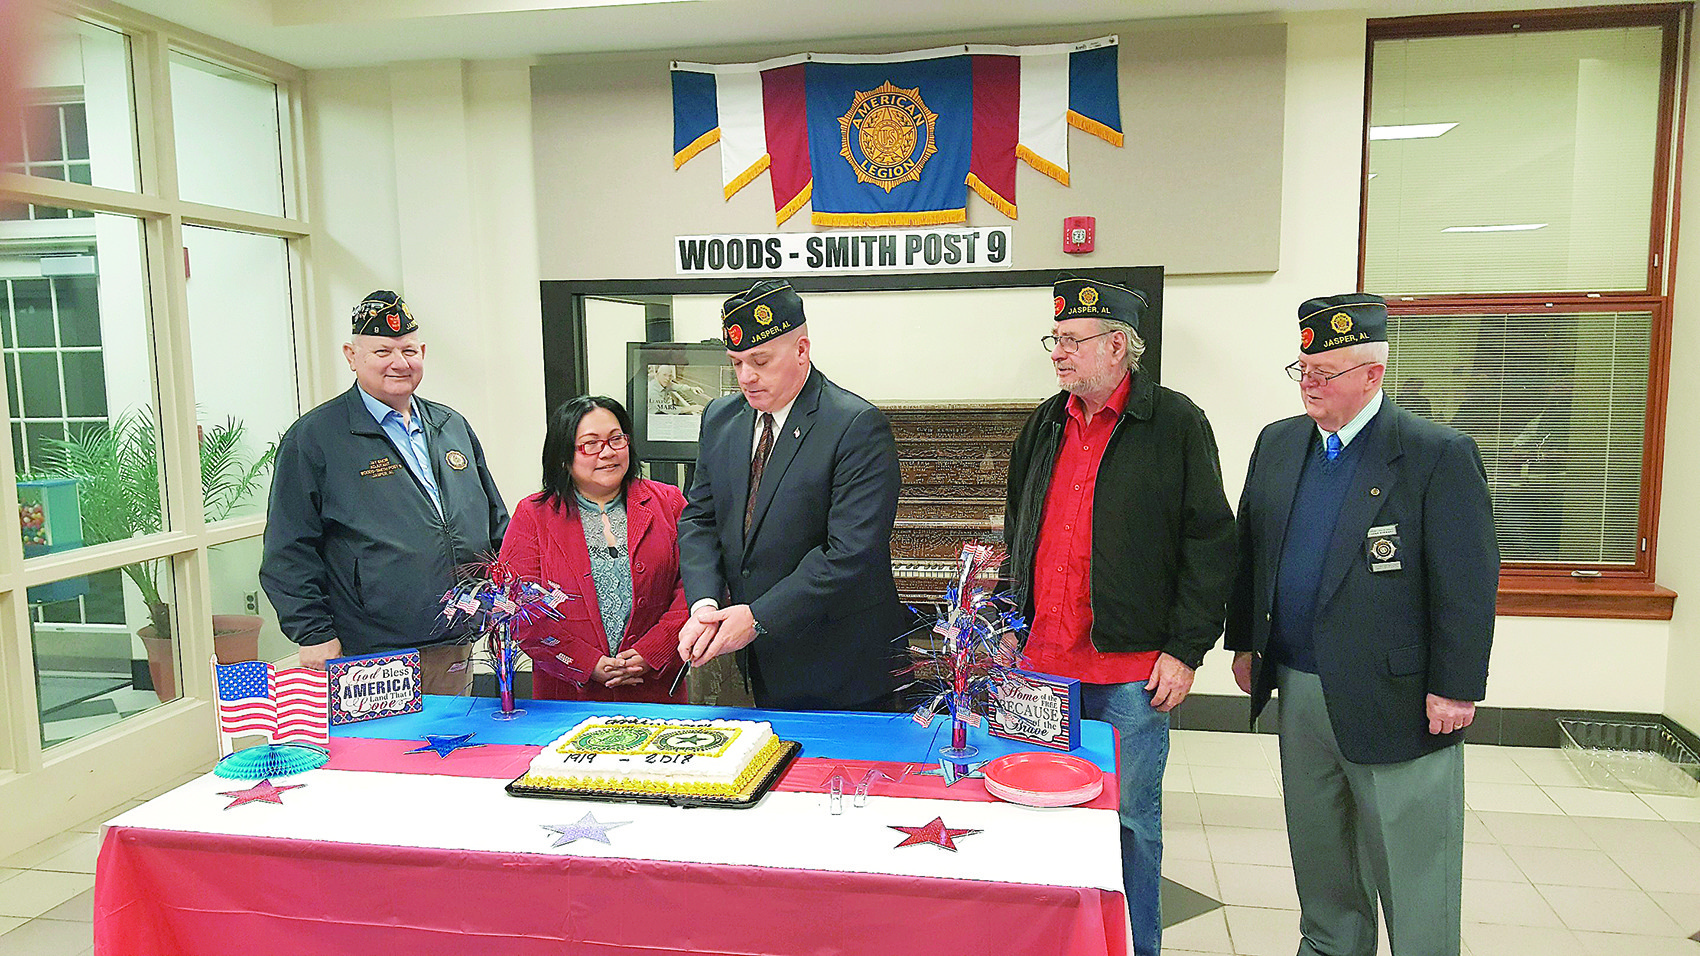 "Members of American Legion Woods-Smith Post 9 in Jasper cut a special birthday cake during their February meeting in honor of the American Legion's 99th Birthday Celebration. From left to right are Post Adjutant James ""Jay"" Snow, Auxiliary Deputy Commander Romalyn Aaron, Post Commander Charlie T. Cook, Post Deputy Commander Gary A. Hallmark, and Chaplain Larry B. Stewart."